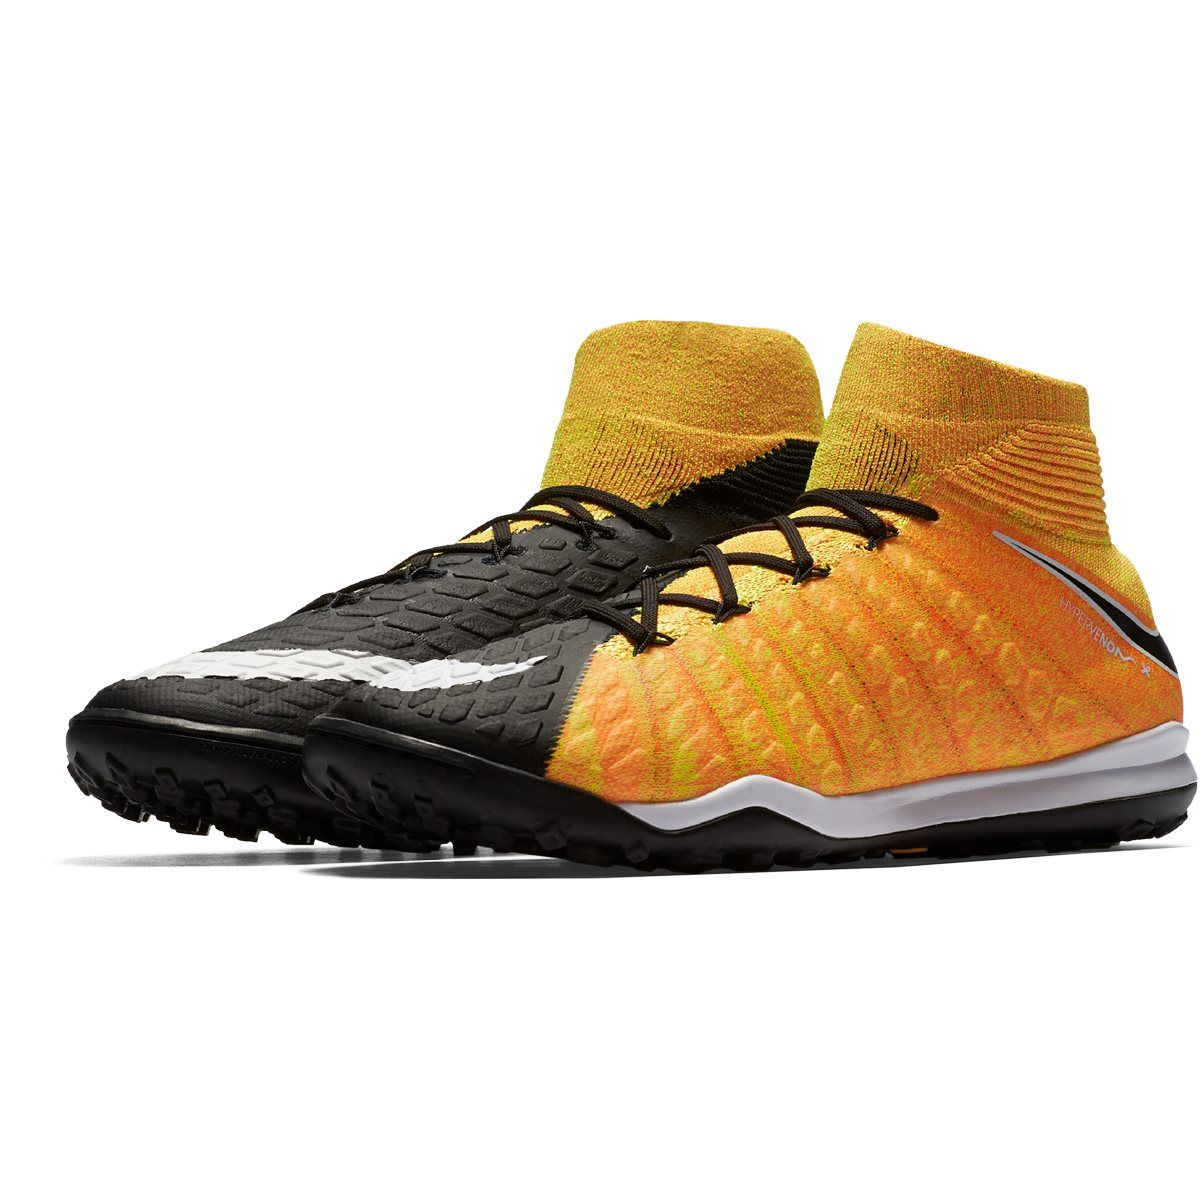 the best attitude a9cd7 20d24 Lock in, Let Loose Pack- Nike Hypervenom X Proximo II DF TF Indoor Soccer  Cleats